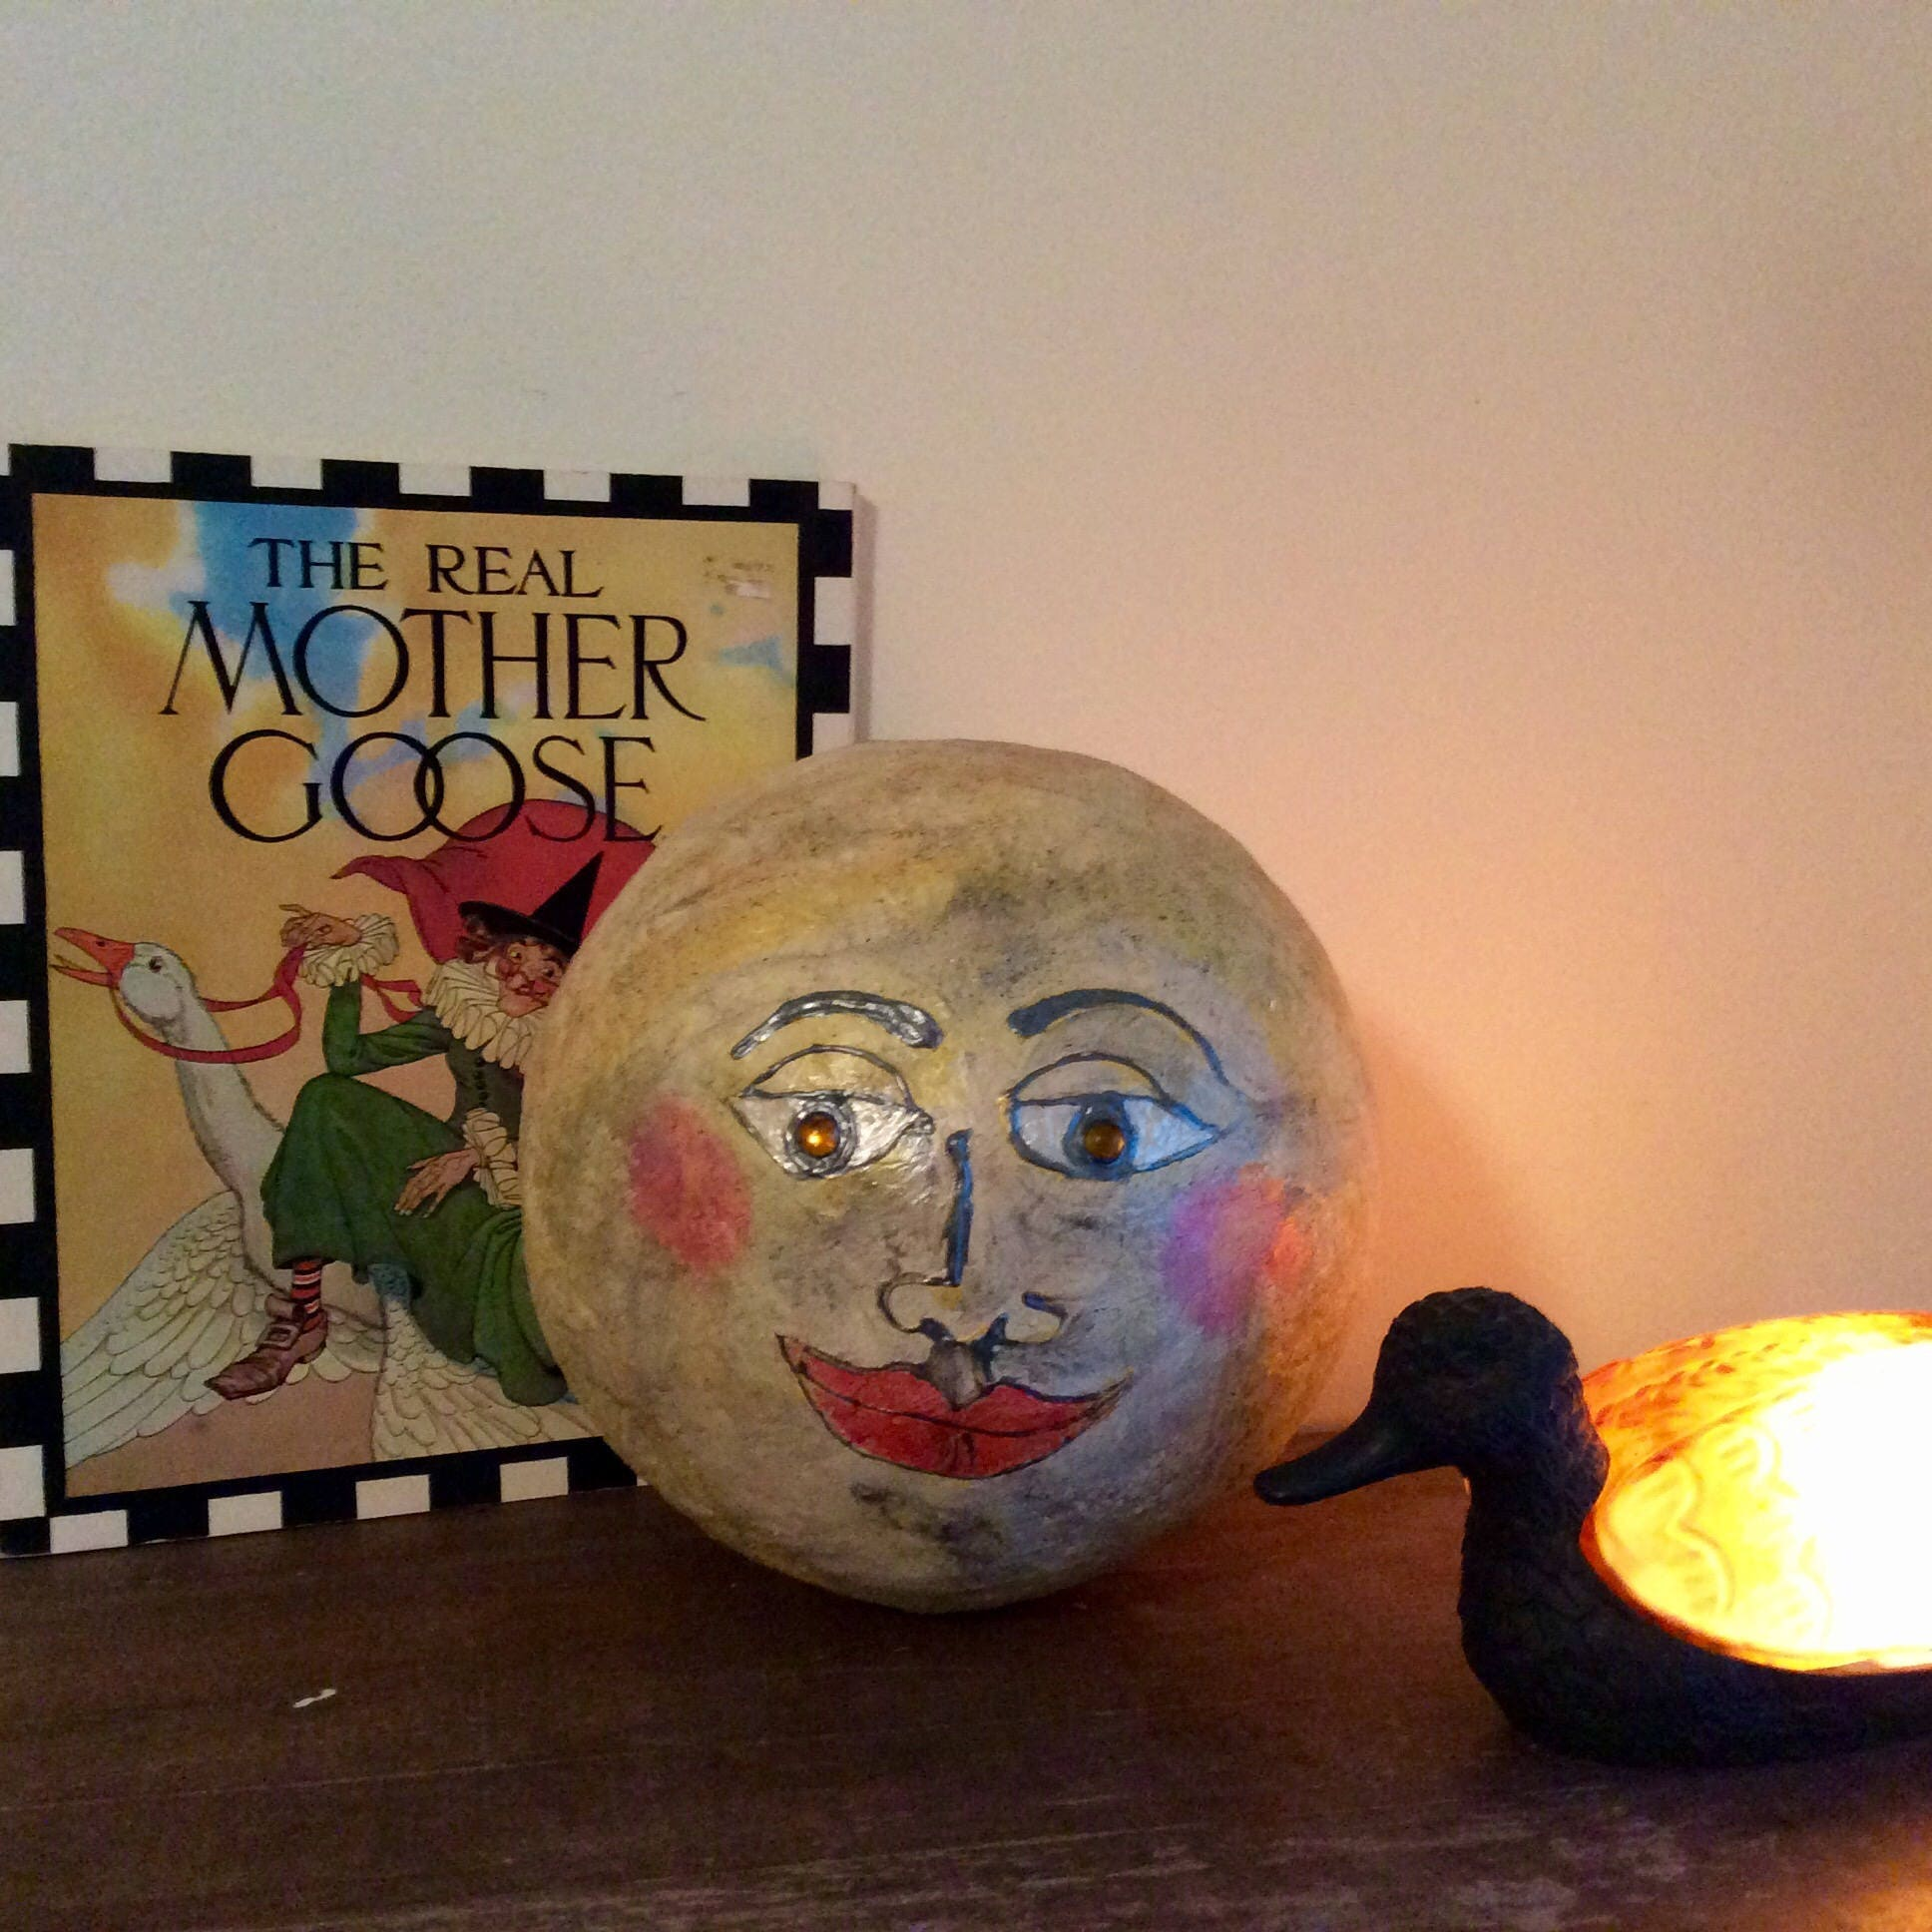 Repurposed Home Decor: Moon Repurposed Home Decor Man In The Moon Sphere